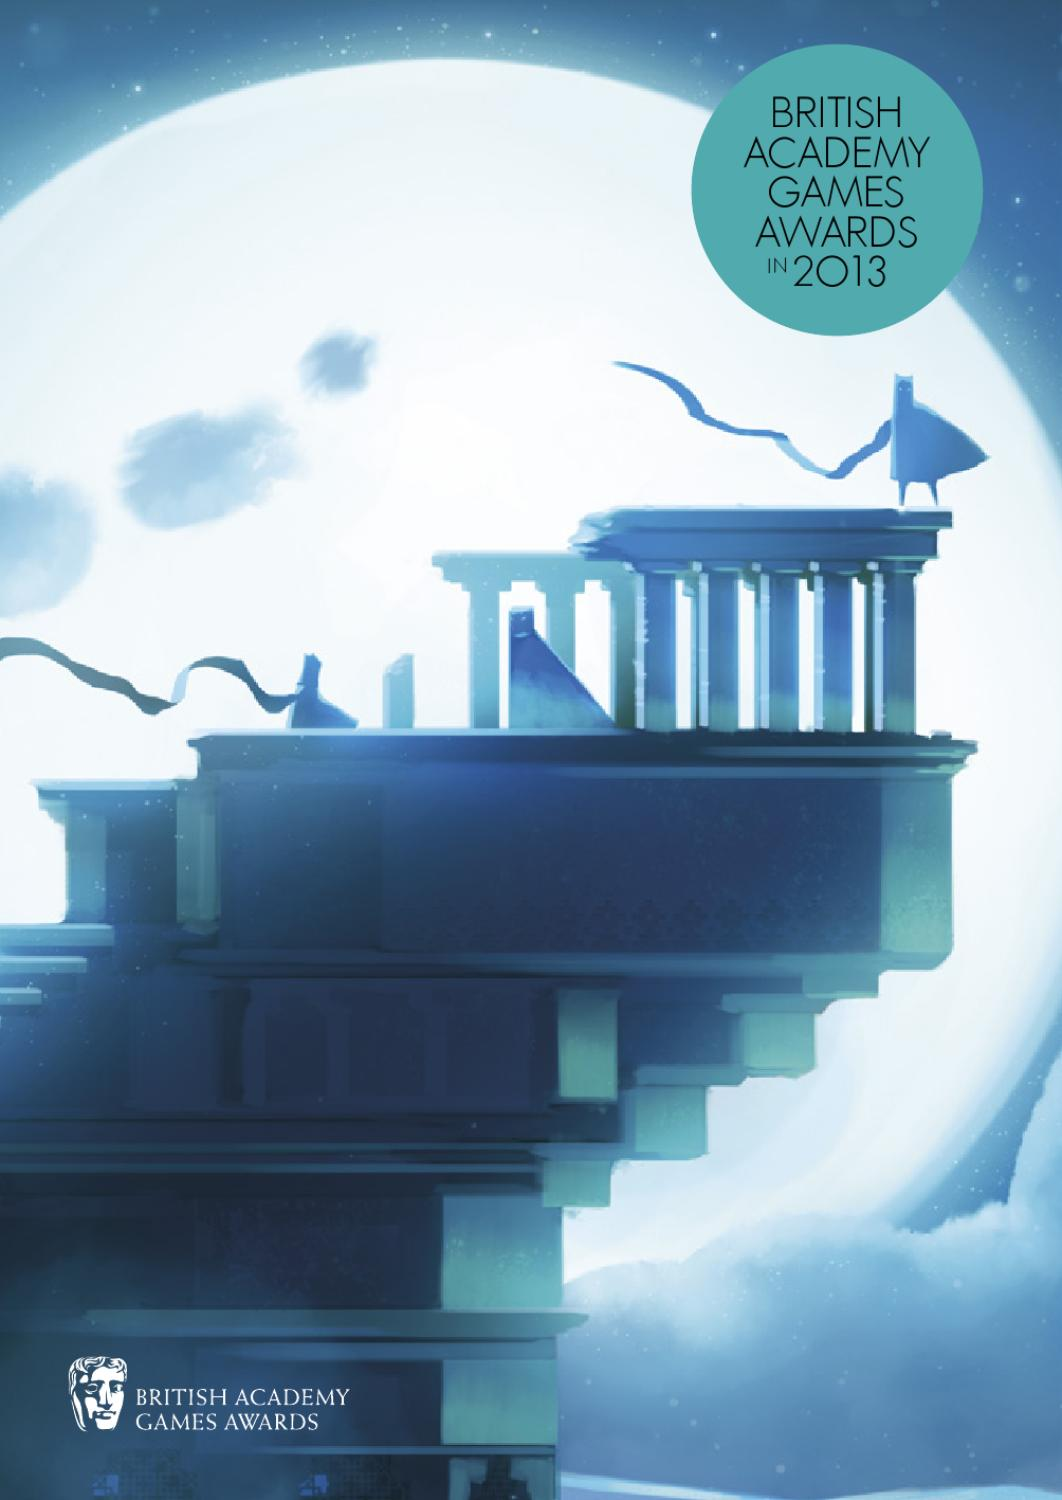 British Academy Games Awards in 2013 - Journey variant cover